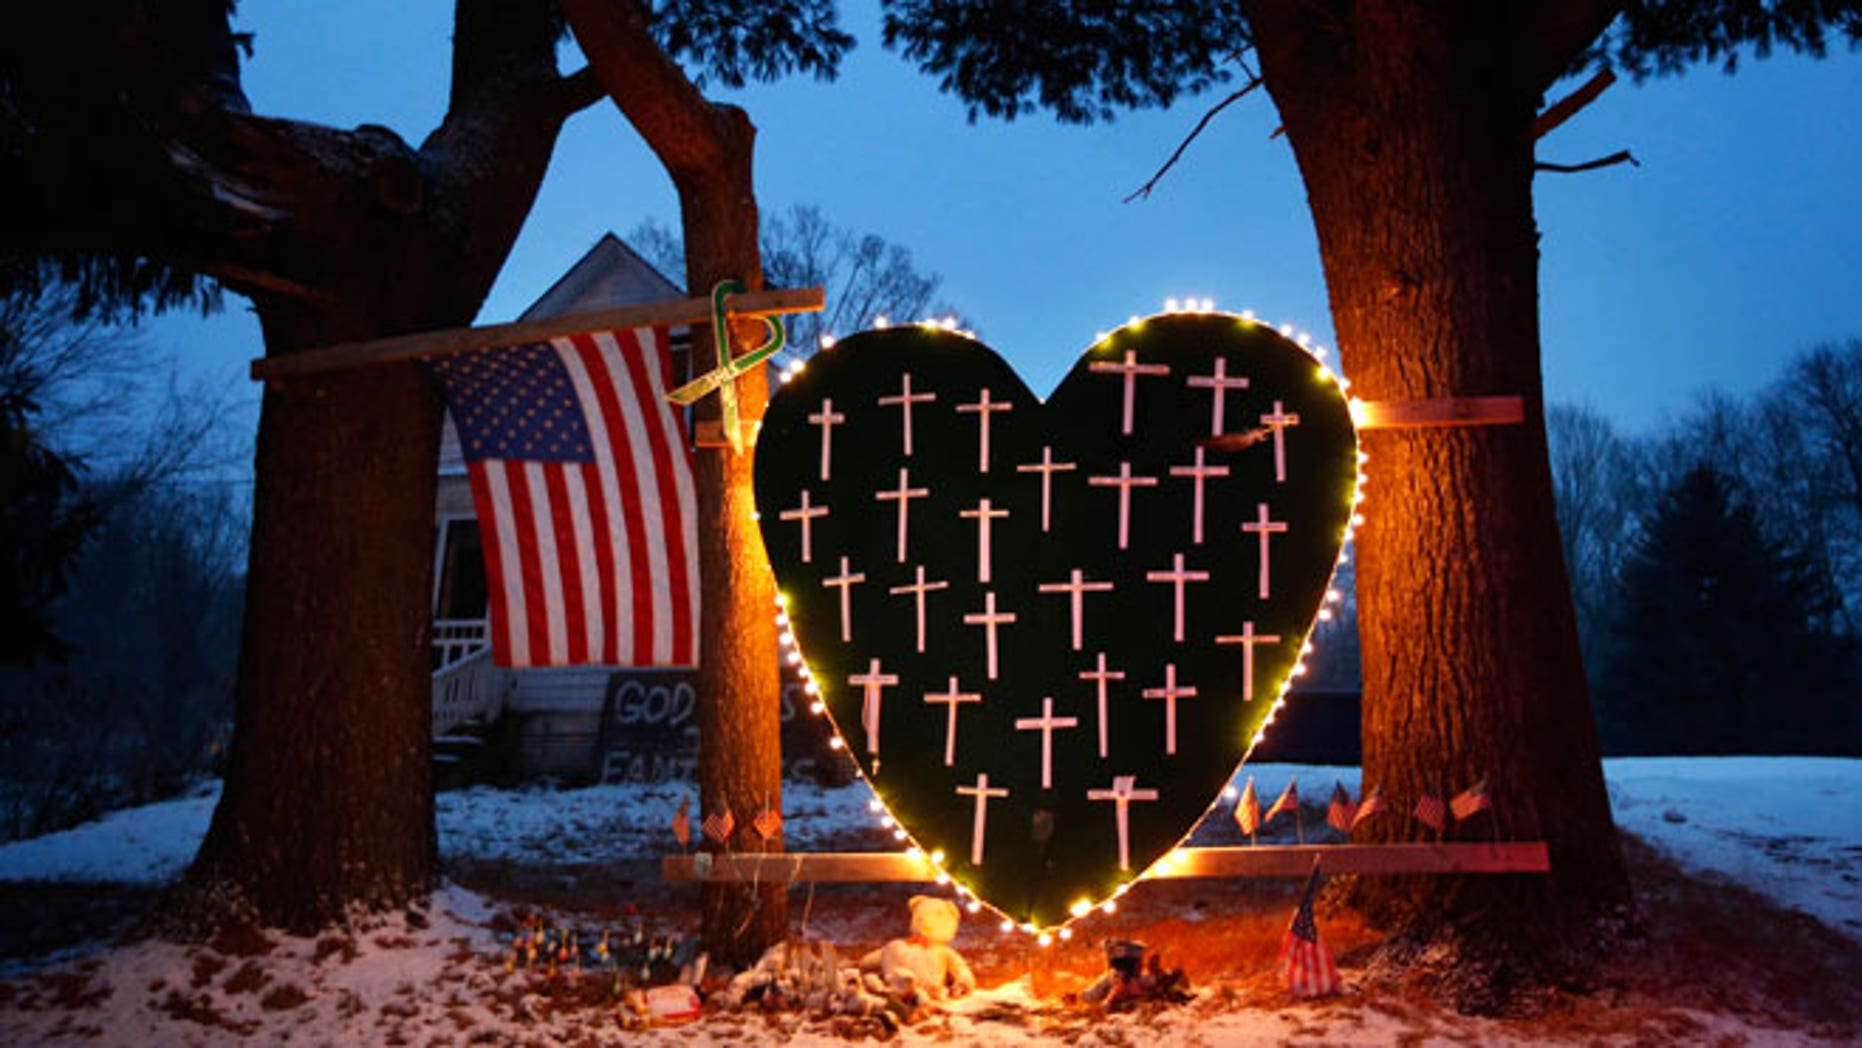 A makeshift memorial with crosses for the victims of the Sandy Hook Elementary School shooting massacre stands outside a home in Newtown, Conn., on the one-year anniversary of the shootings, Dec. 14, 2013.